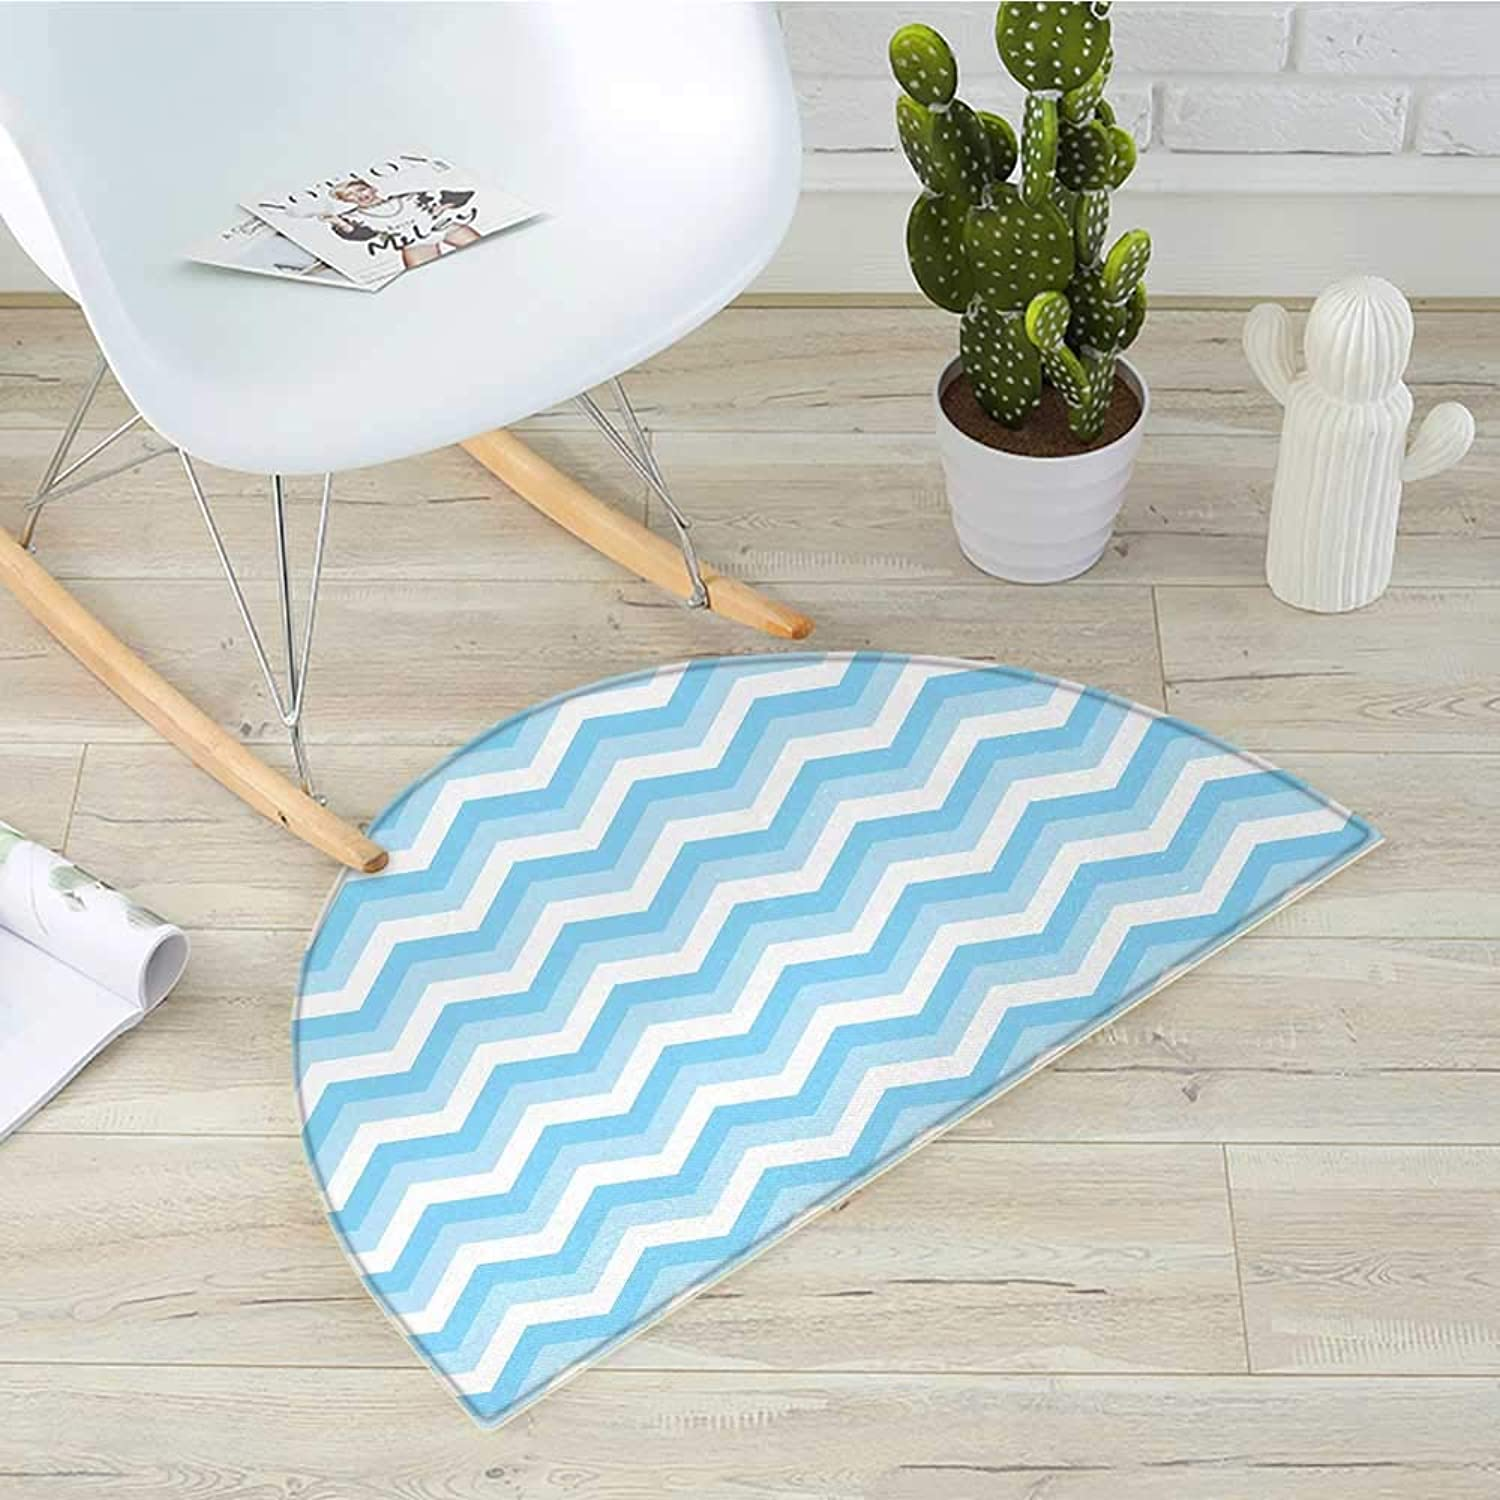 Chevron Half Round Door mats Zigzag Pattern Sea Aqua colors Classic Antique Artwork Illustration Bathroom Mat H 39.3  xD 59  Baby bluee Pale bluee White